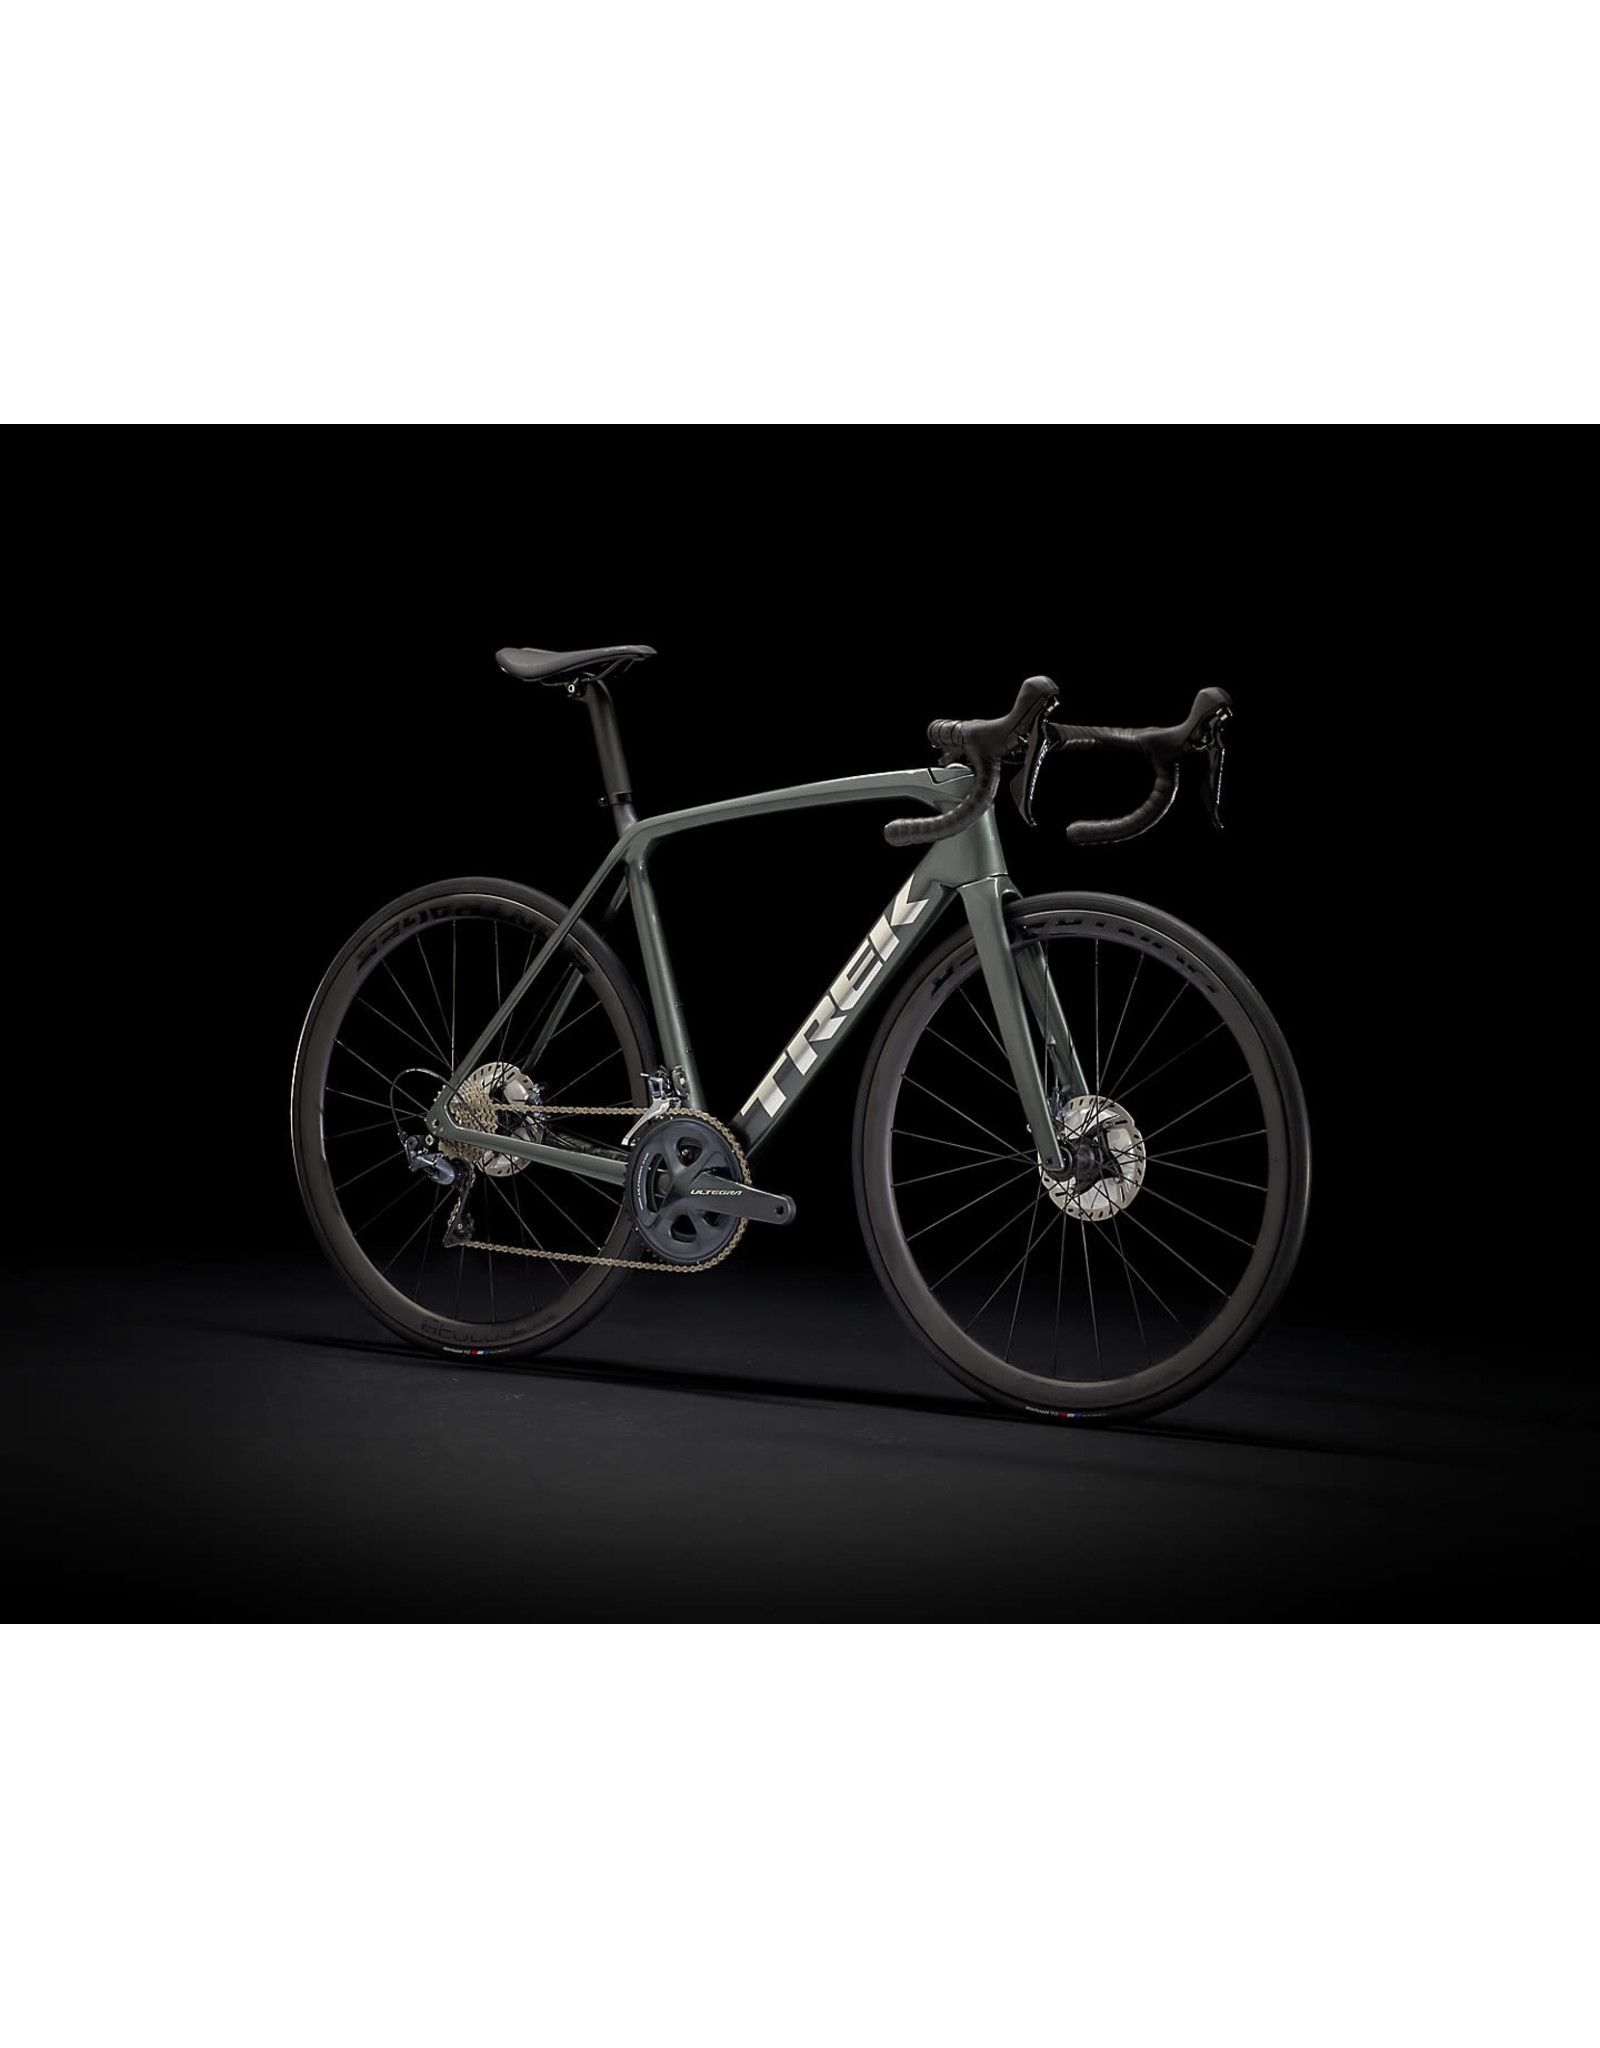 TREK Emonda SL 6 Disc Pro 54 Lithium Grey/Brushed Chrome